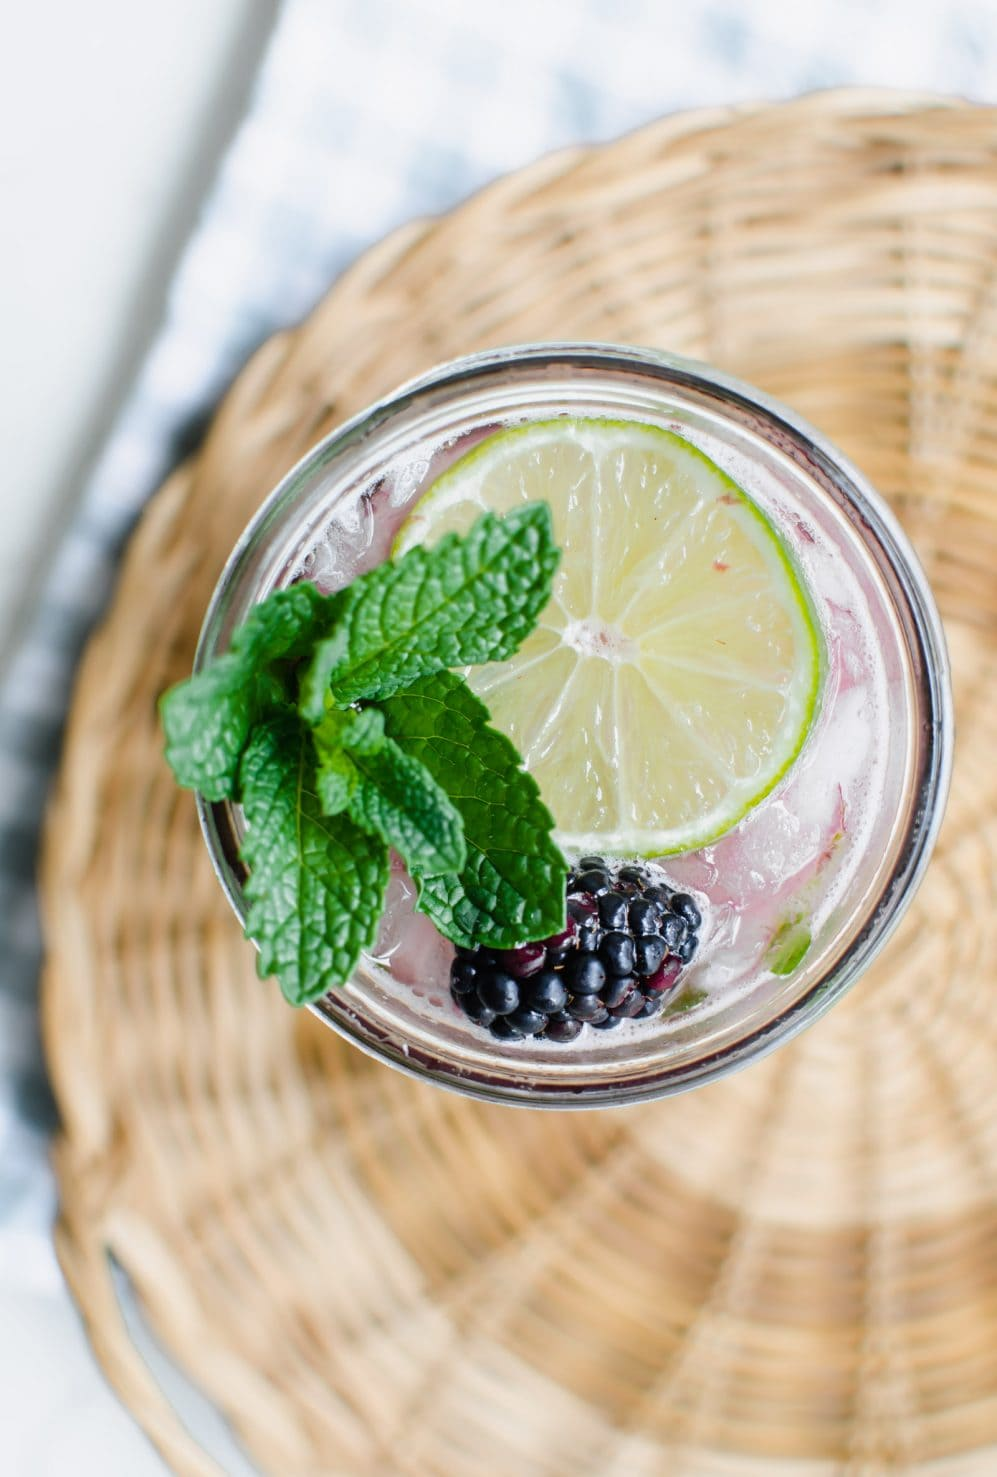 Overhead shot of a mason jar filled with a blackberry drink, lime slice, mint sprig, and blackberry. The jar is sitting in a woven basket tray on top of a green gingham tea towel.